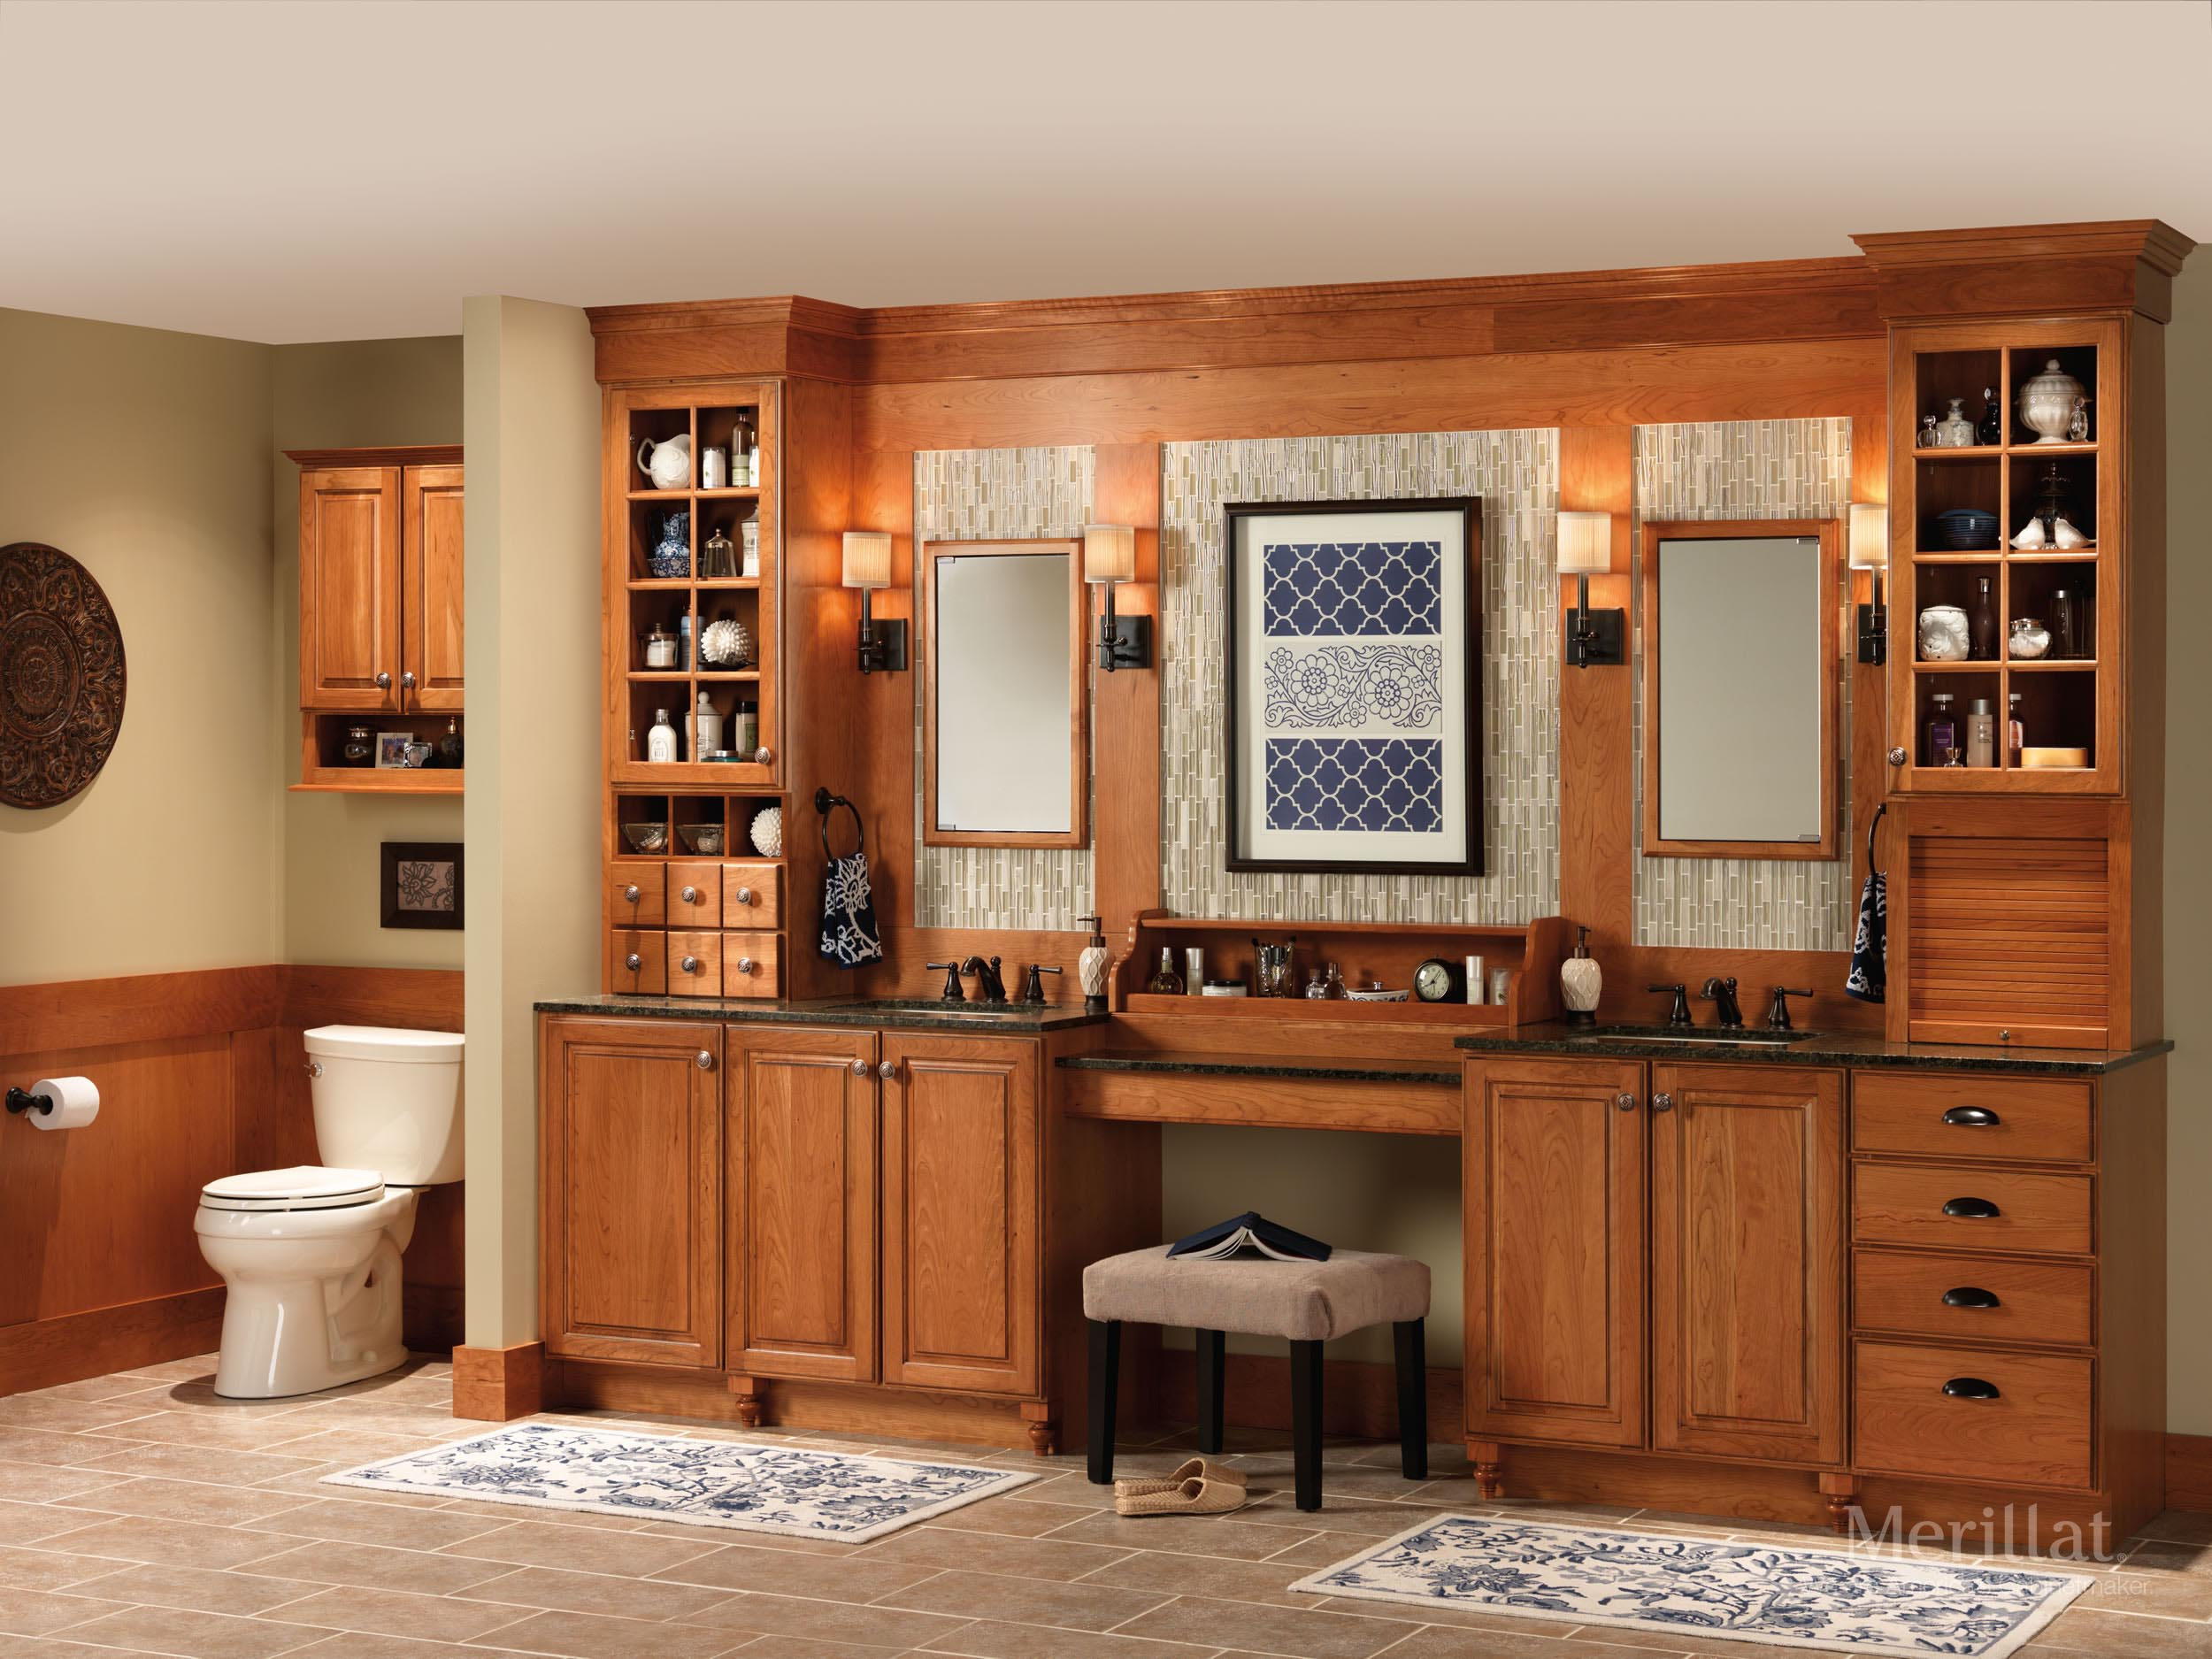 merillat classic somerton hill in cherry amaretto with java glaze - Merillat Classic Kitchen Cabinets